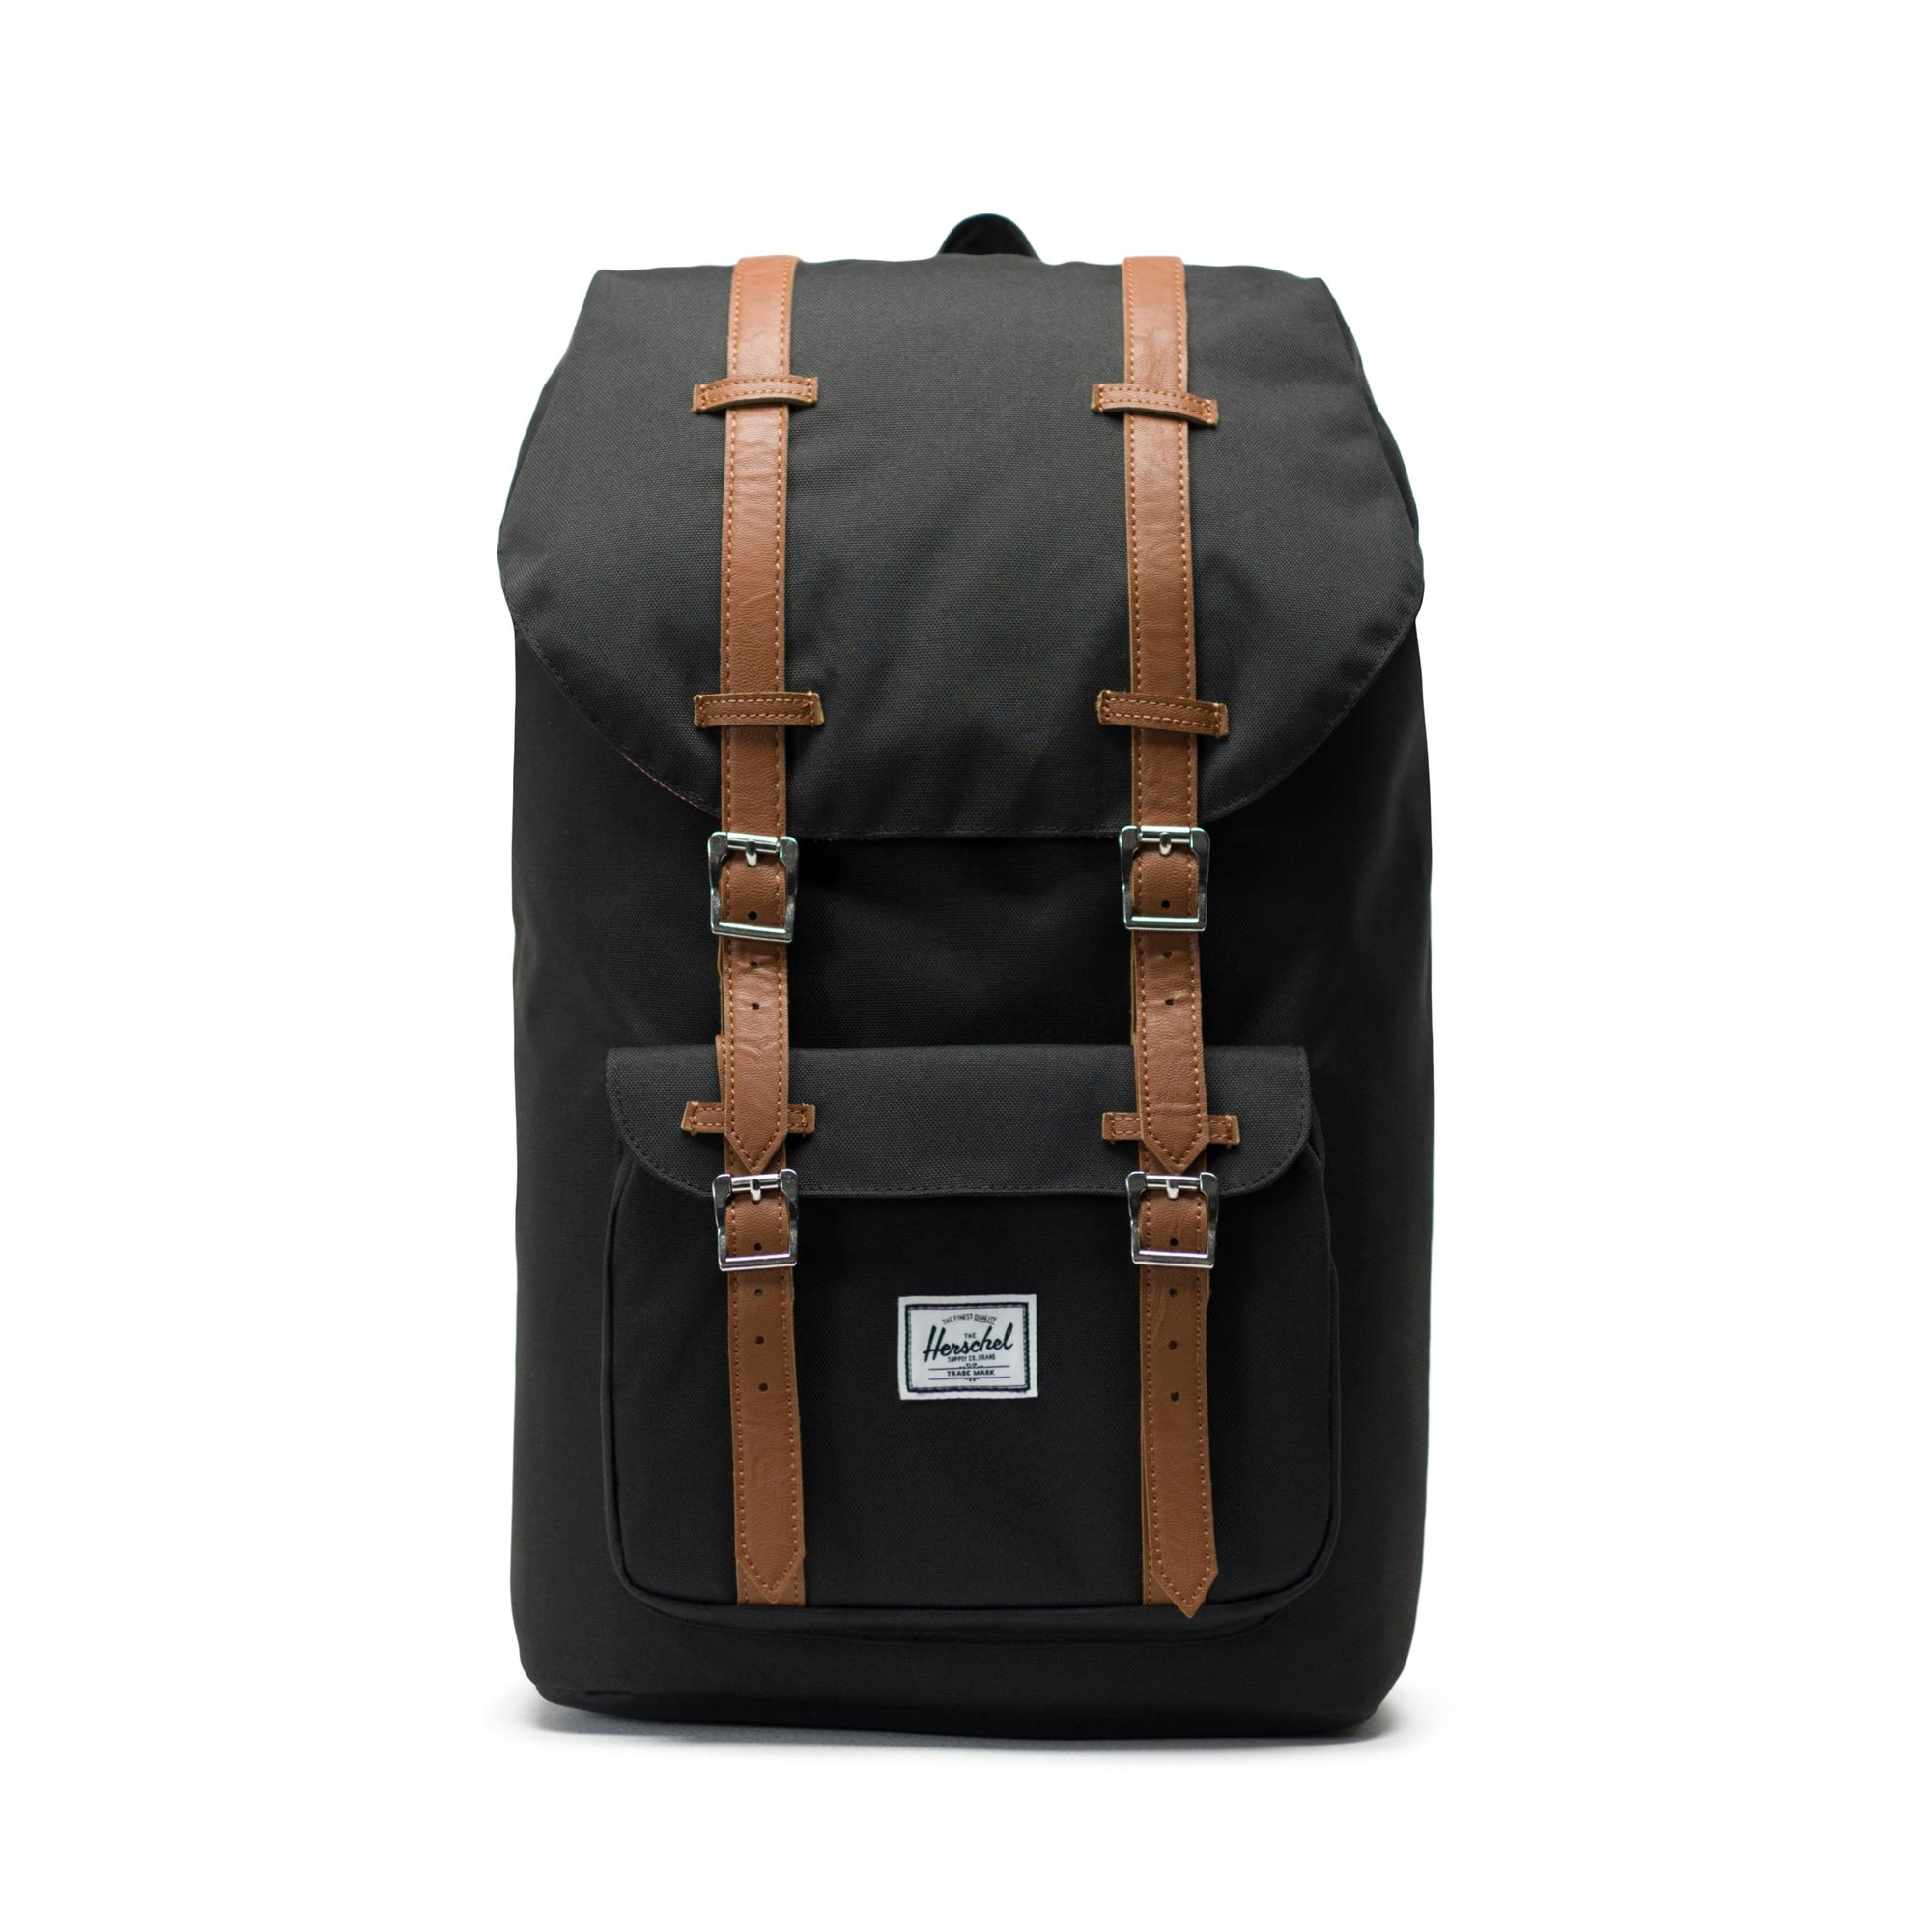 a2e1af2ad0c77 Herschel Little America Backpack